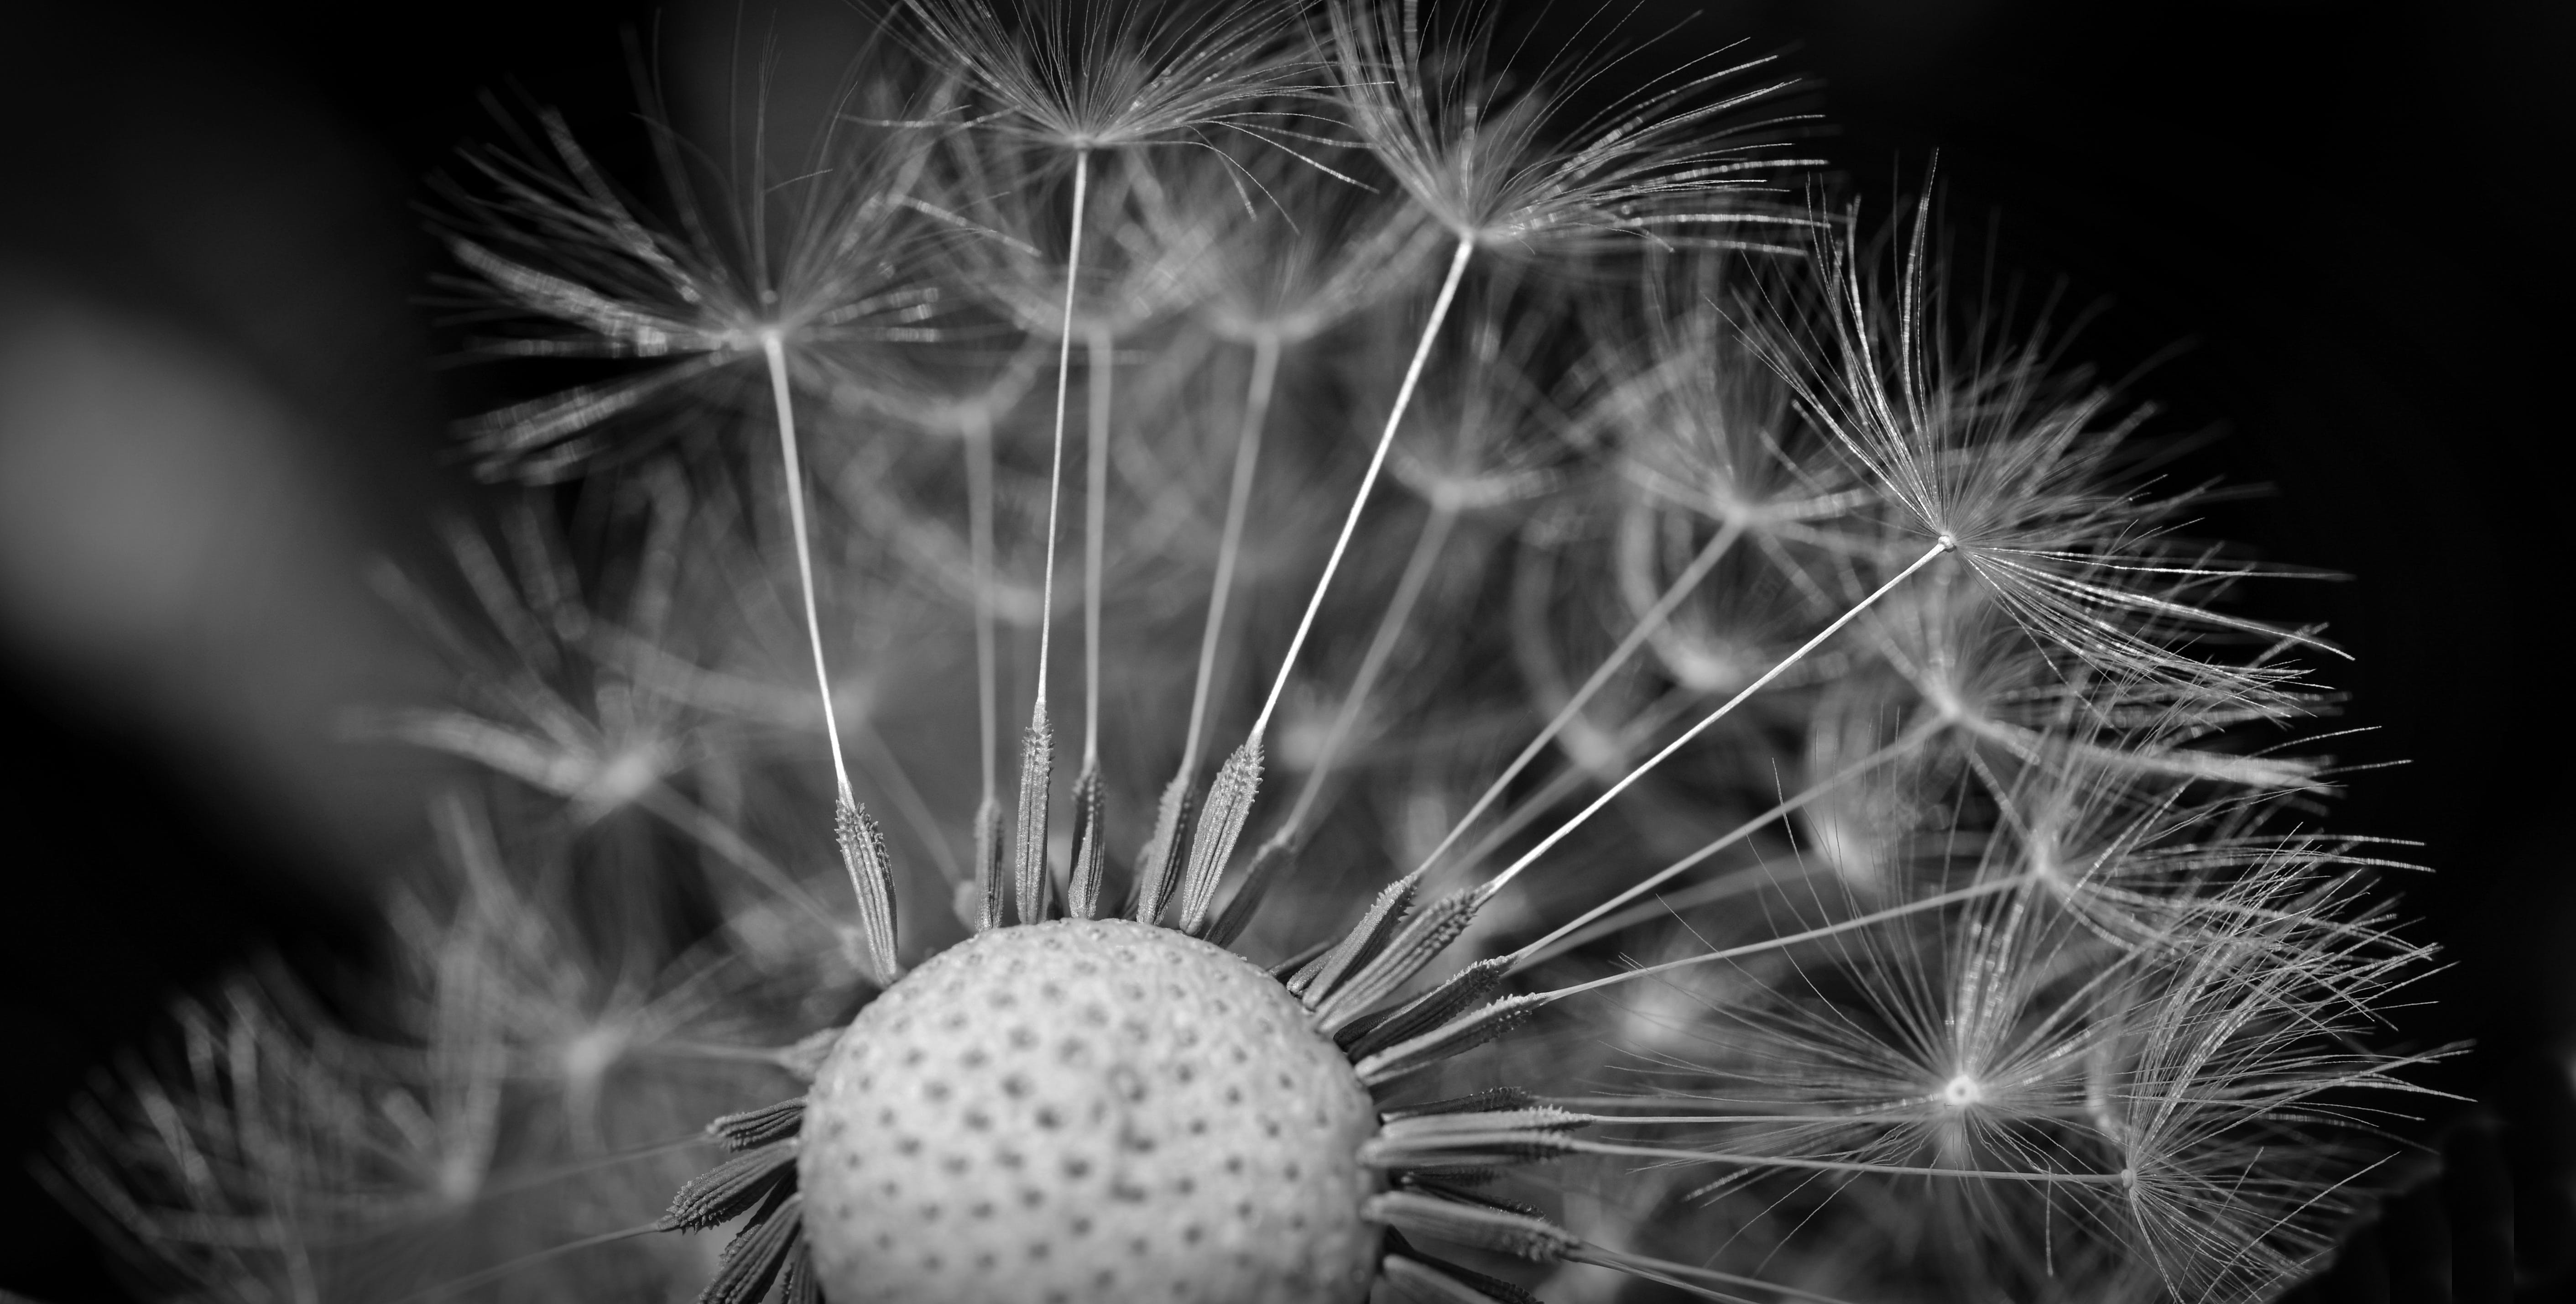 Grayscale Photography of Dandelion